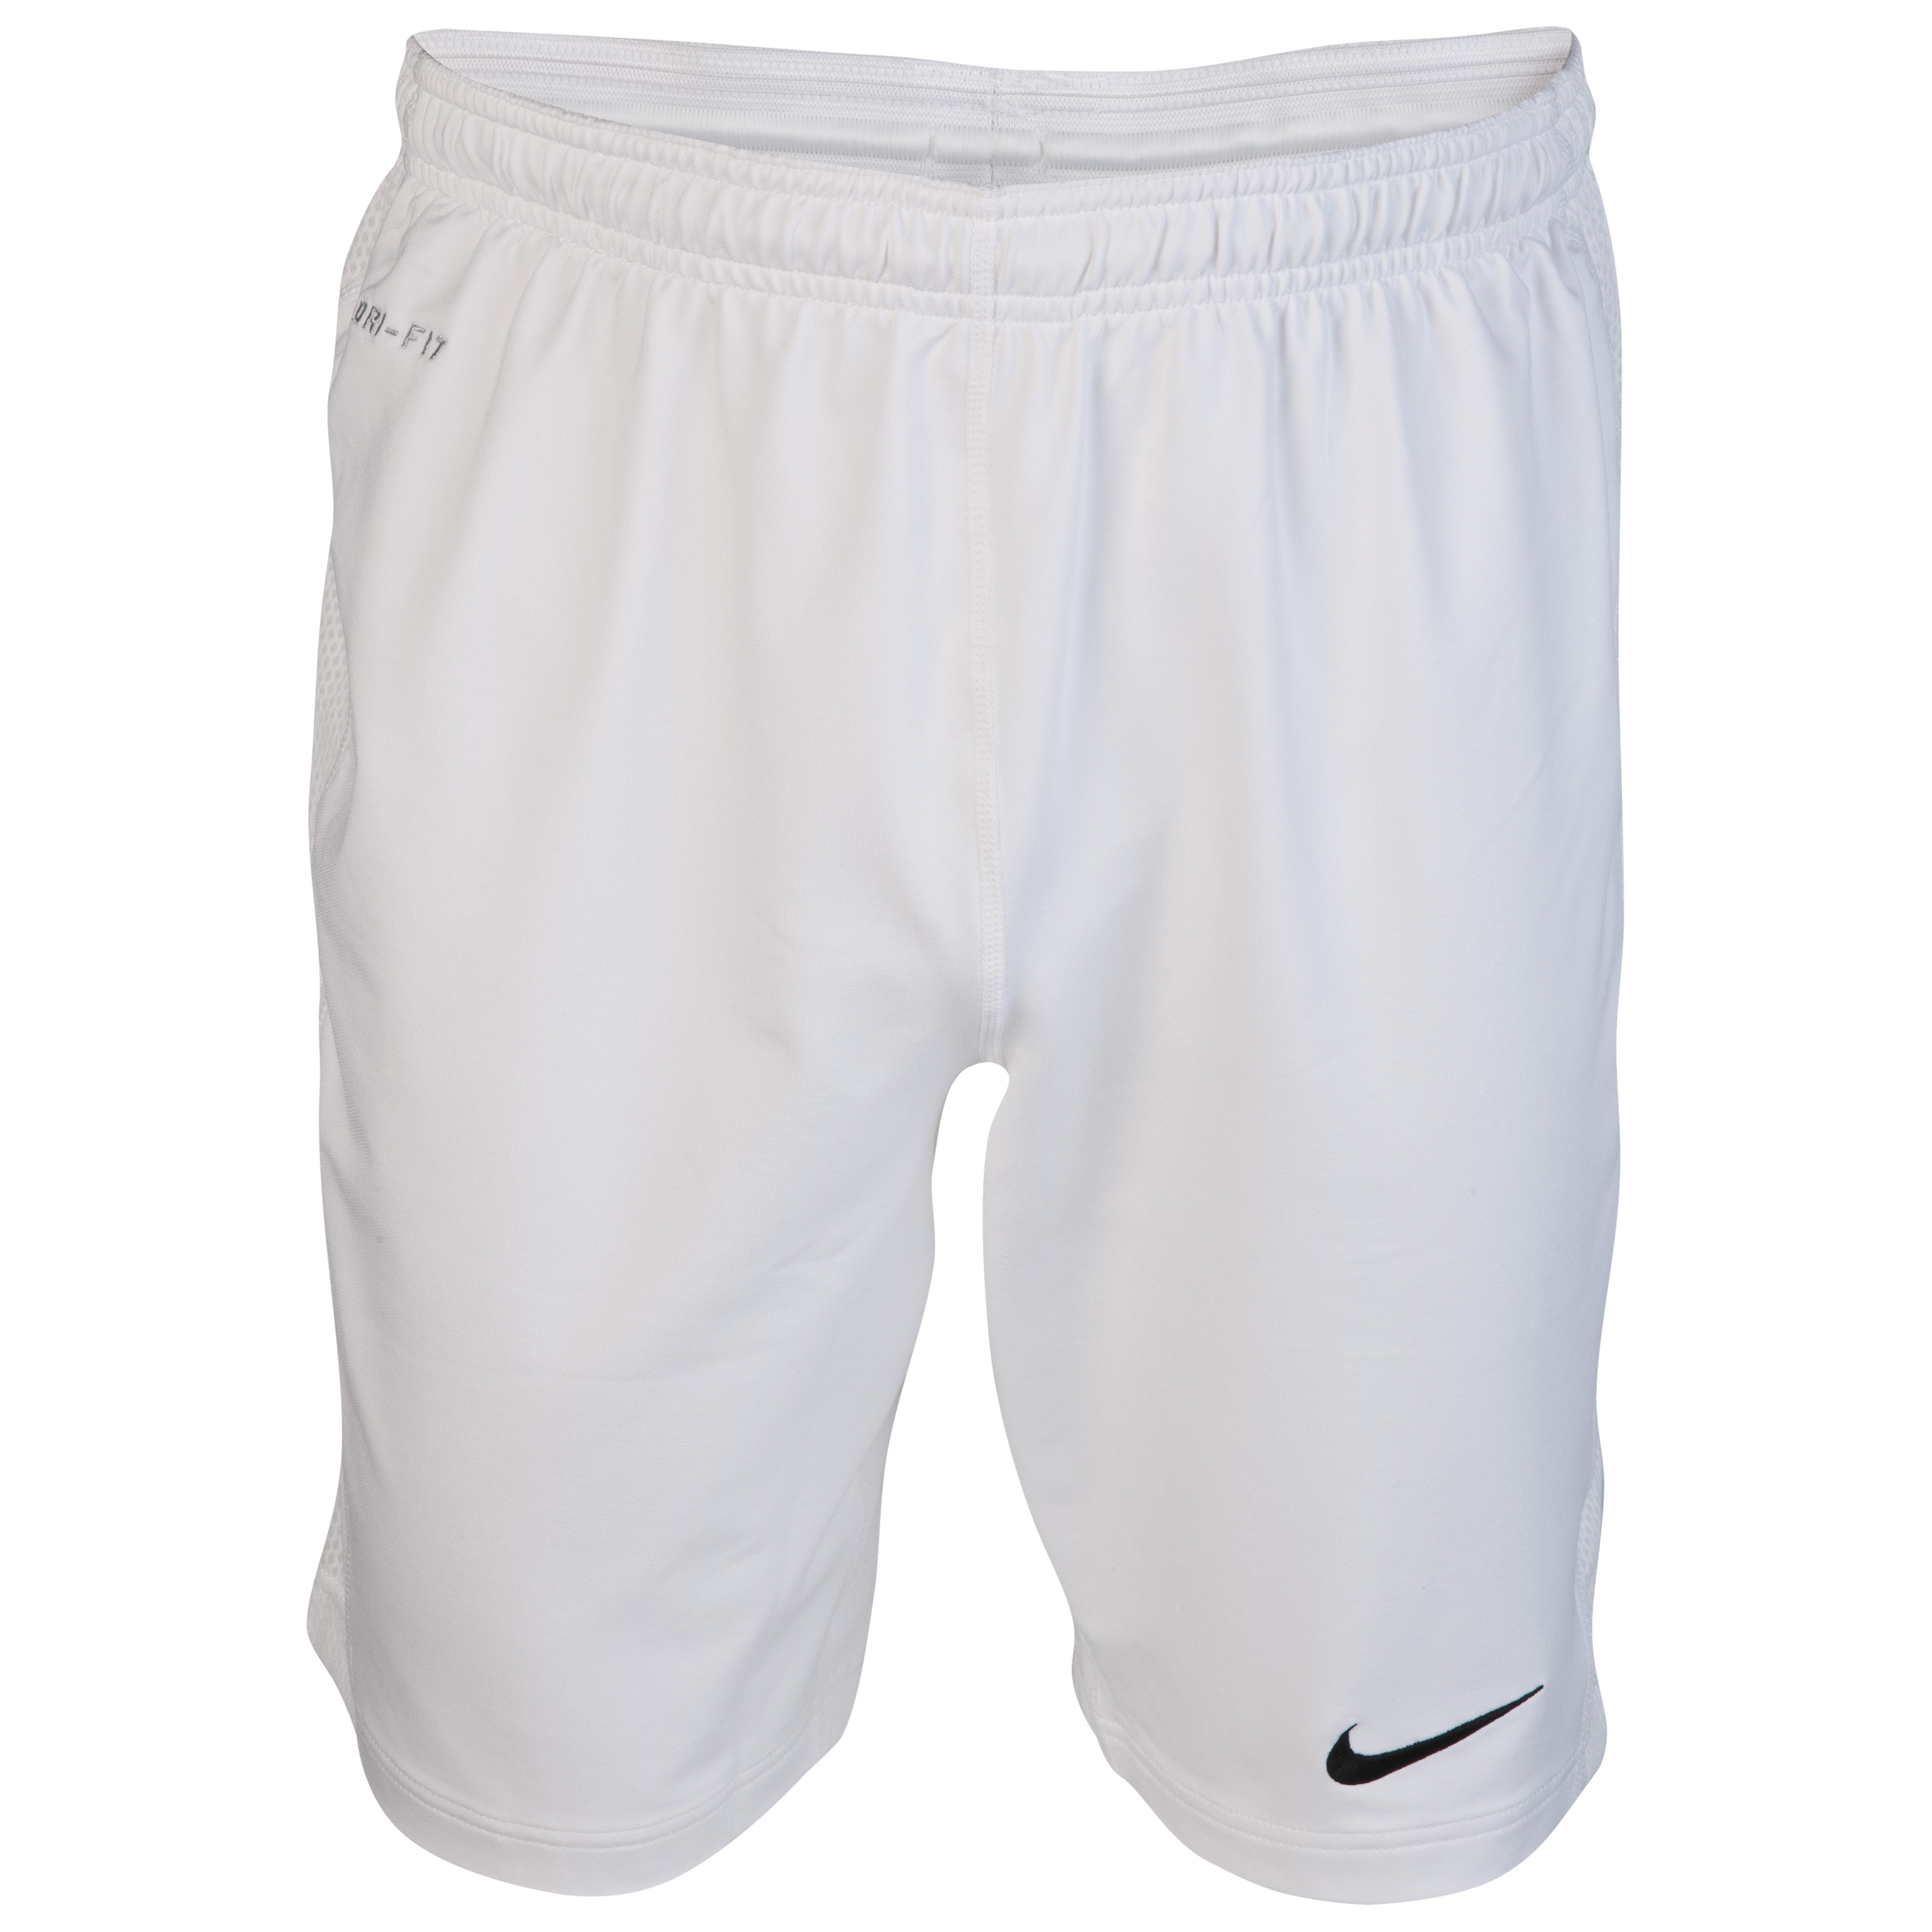 Nike Elite Long Knit Training Shorts - White/Black